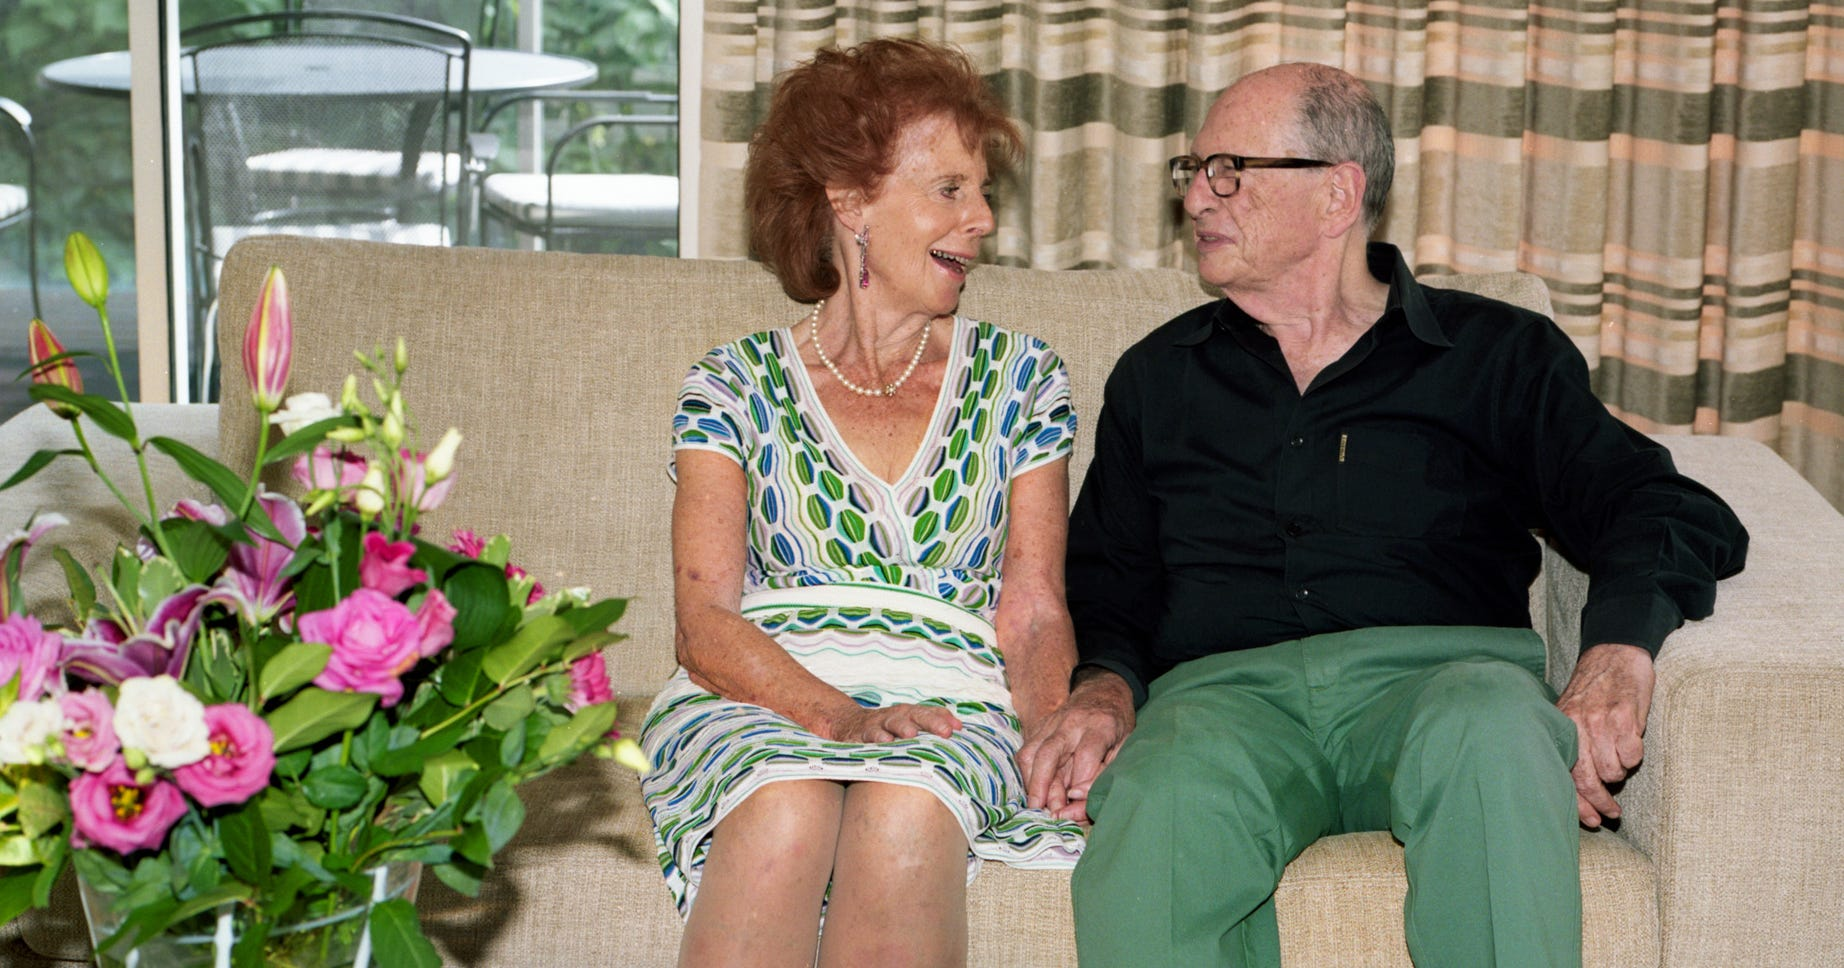 How To Stay Together For 50 Years